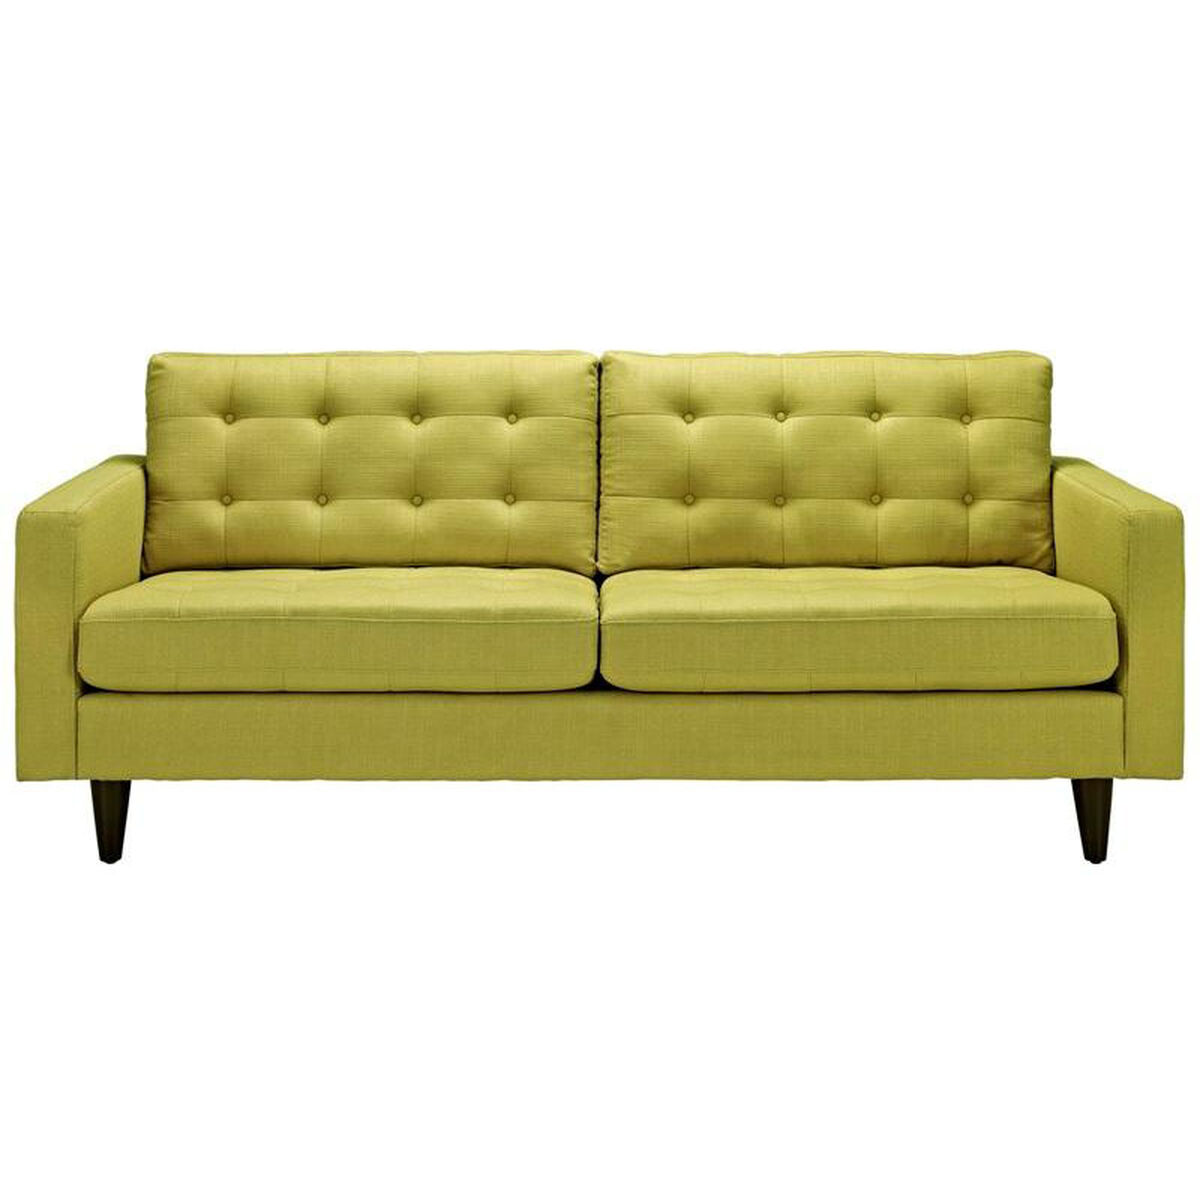 Modway empress upholstered sofa in wheatgrass eei 1011 whe Upholstered sofas and loveseats